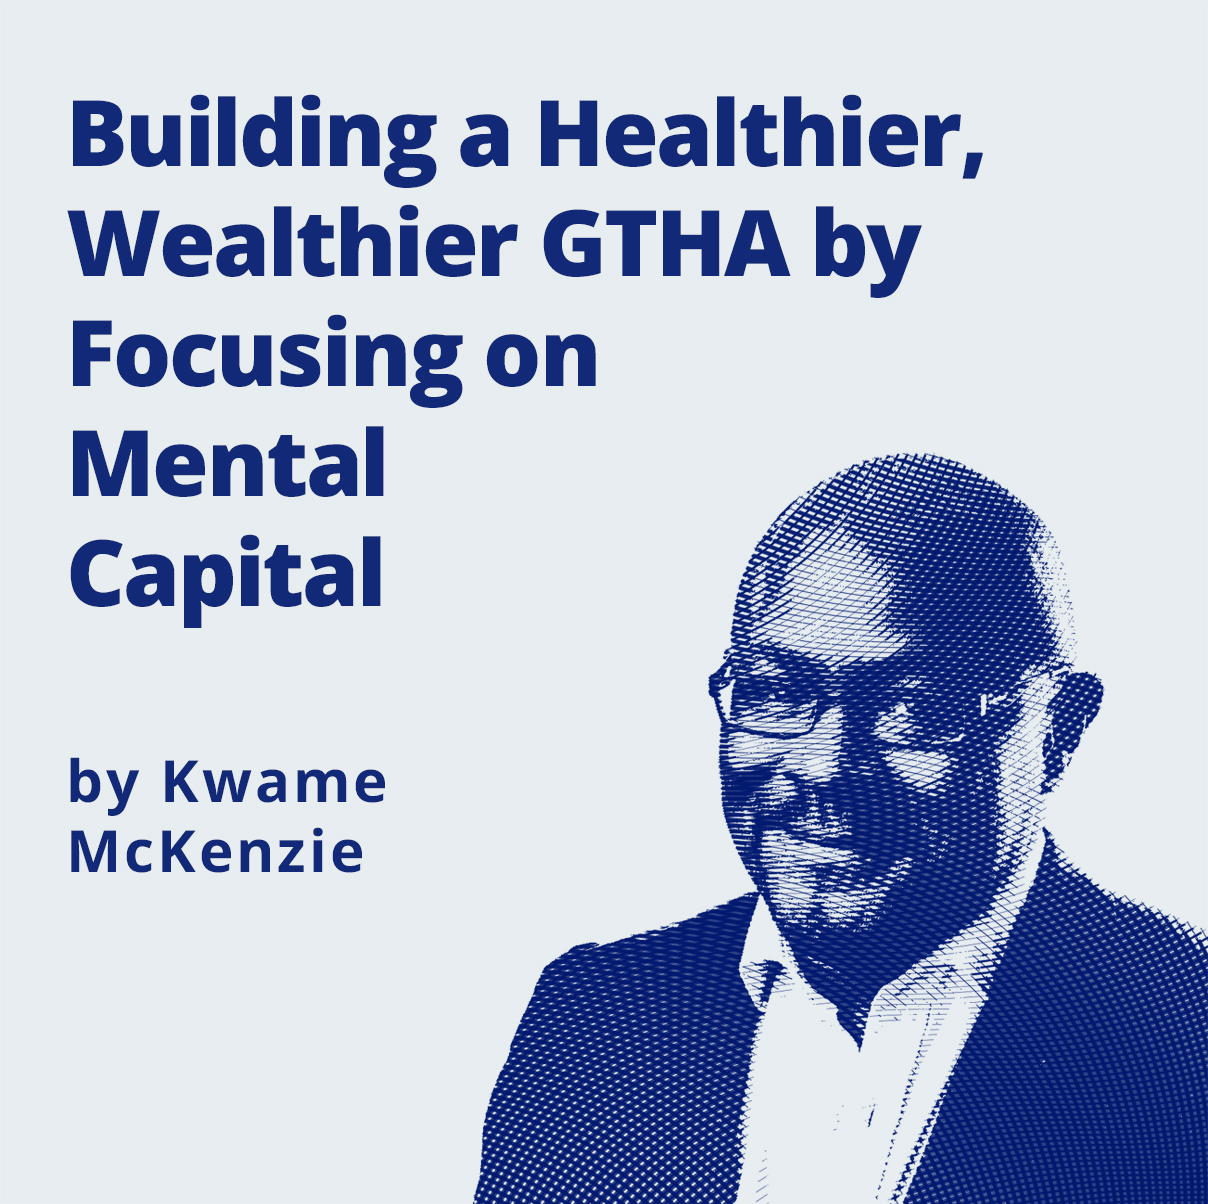 Image -  Building a Healthier, Wealthier GTHA by Focusing on Mental Capital by Kwame McKenzie